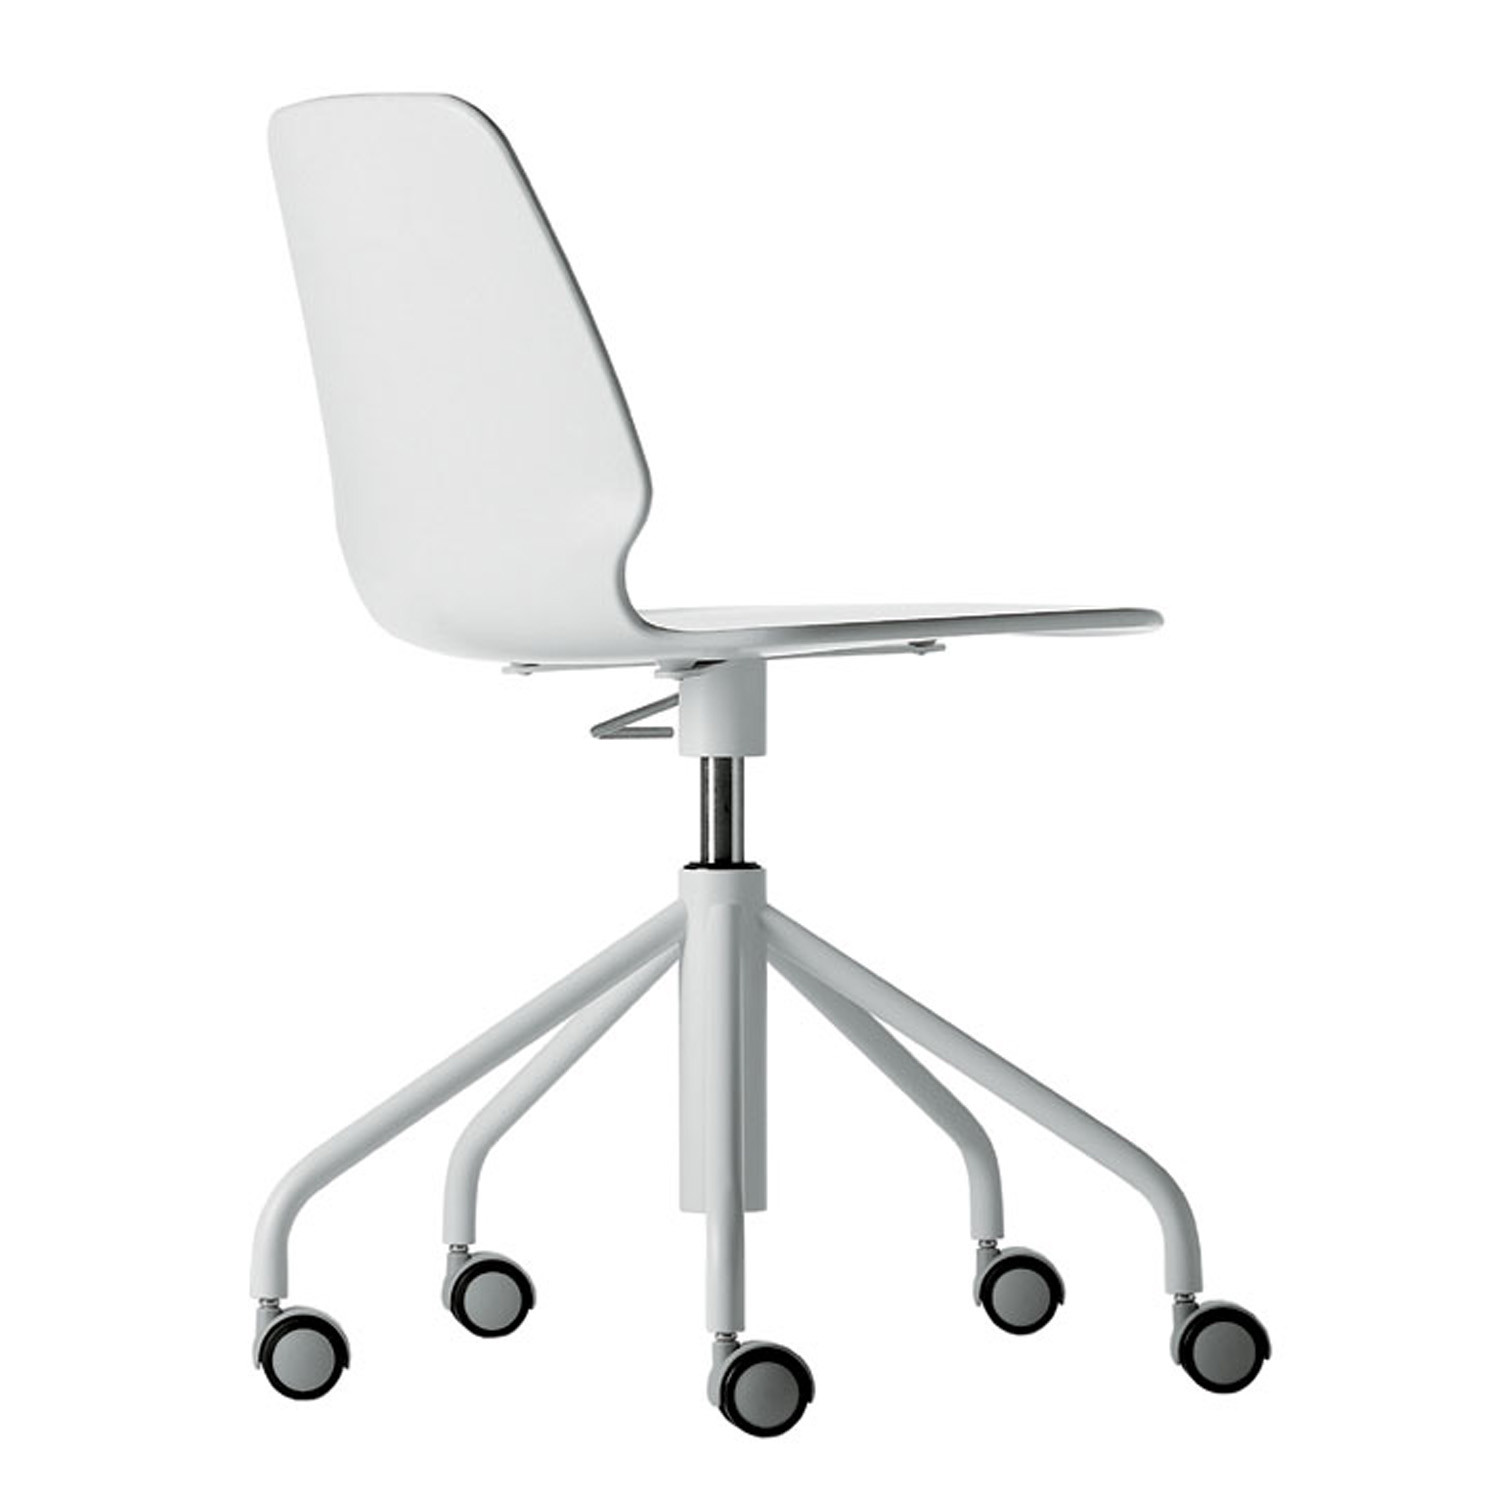 Selinunte Studio Chair - 5-Star Swivel Base on castors